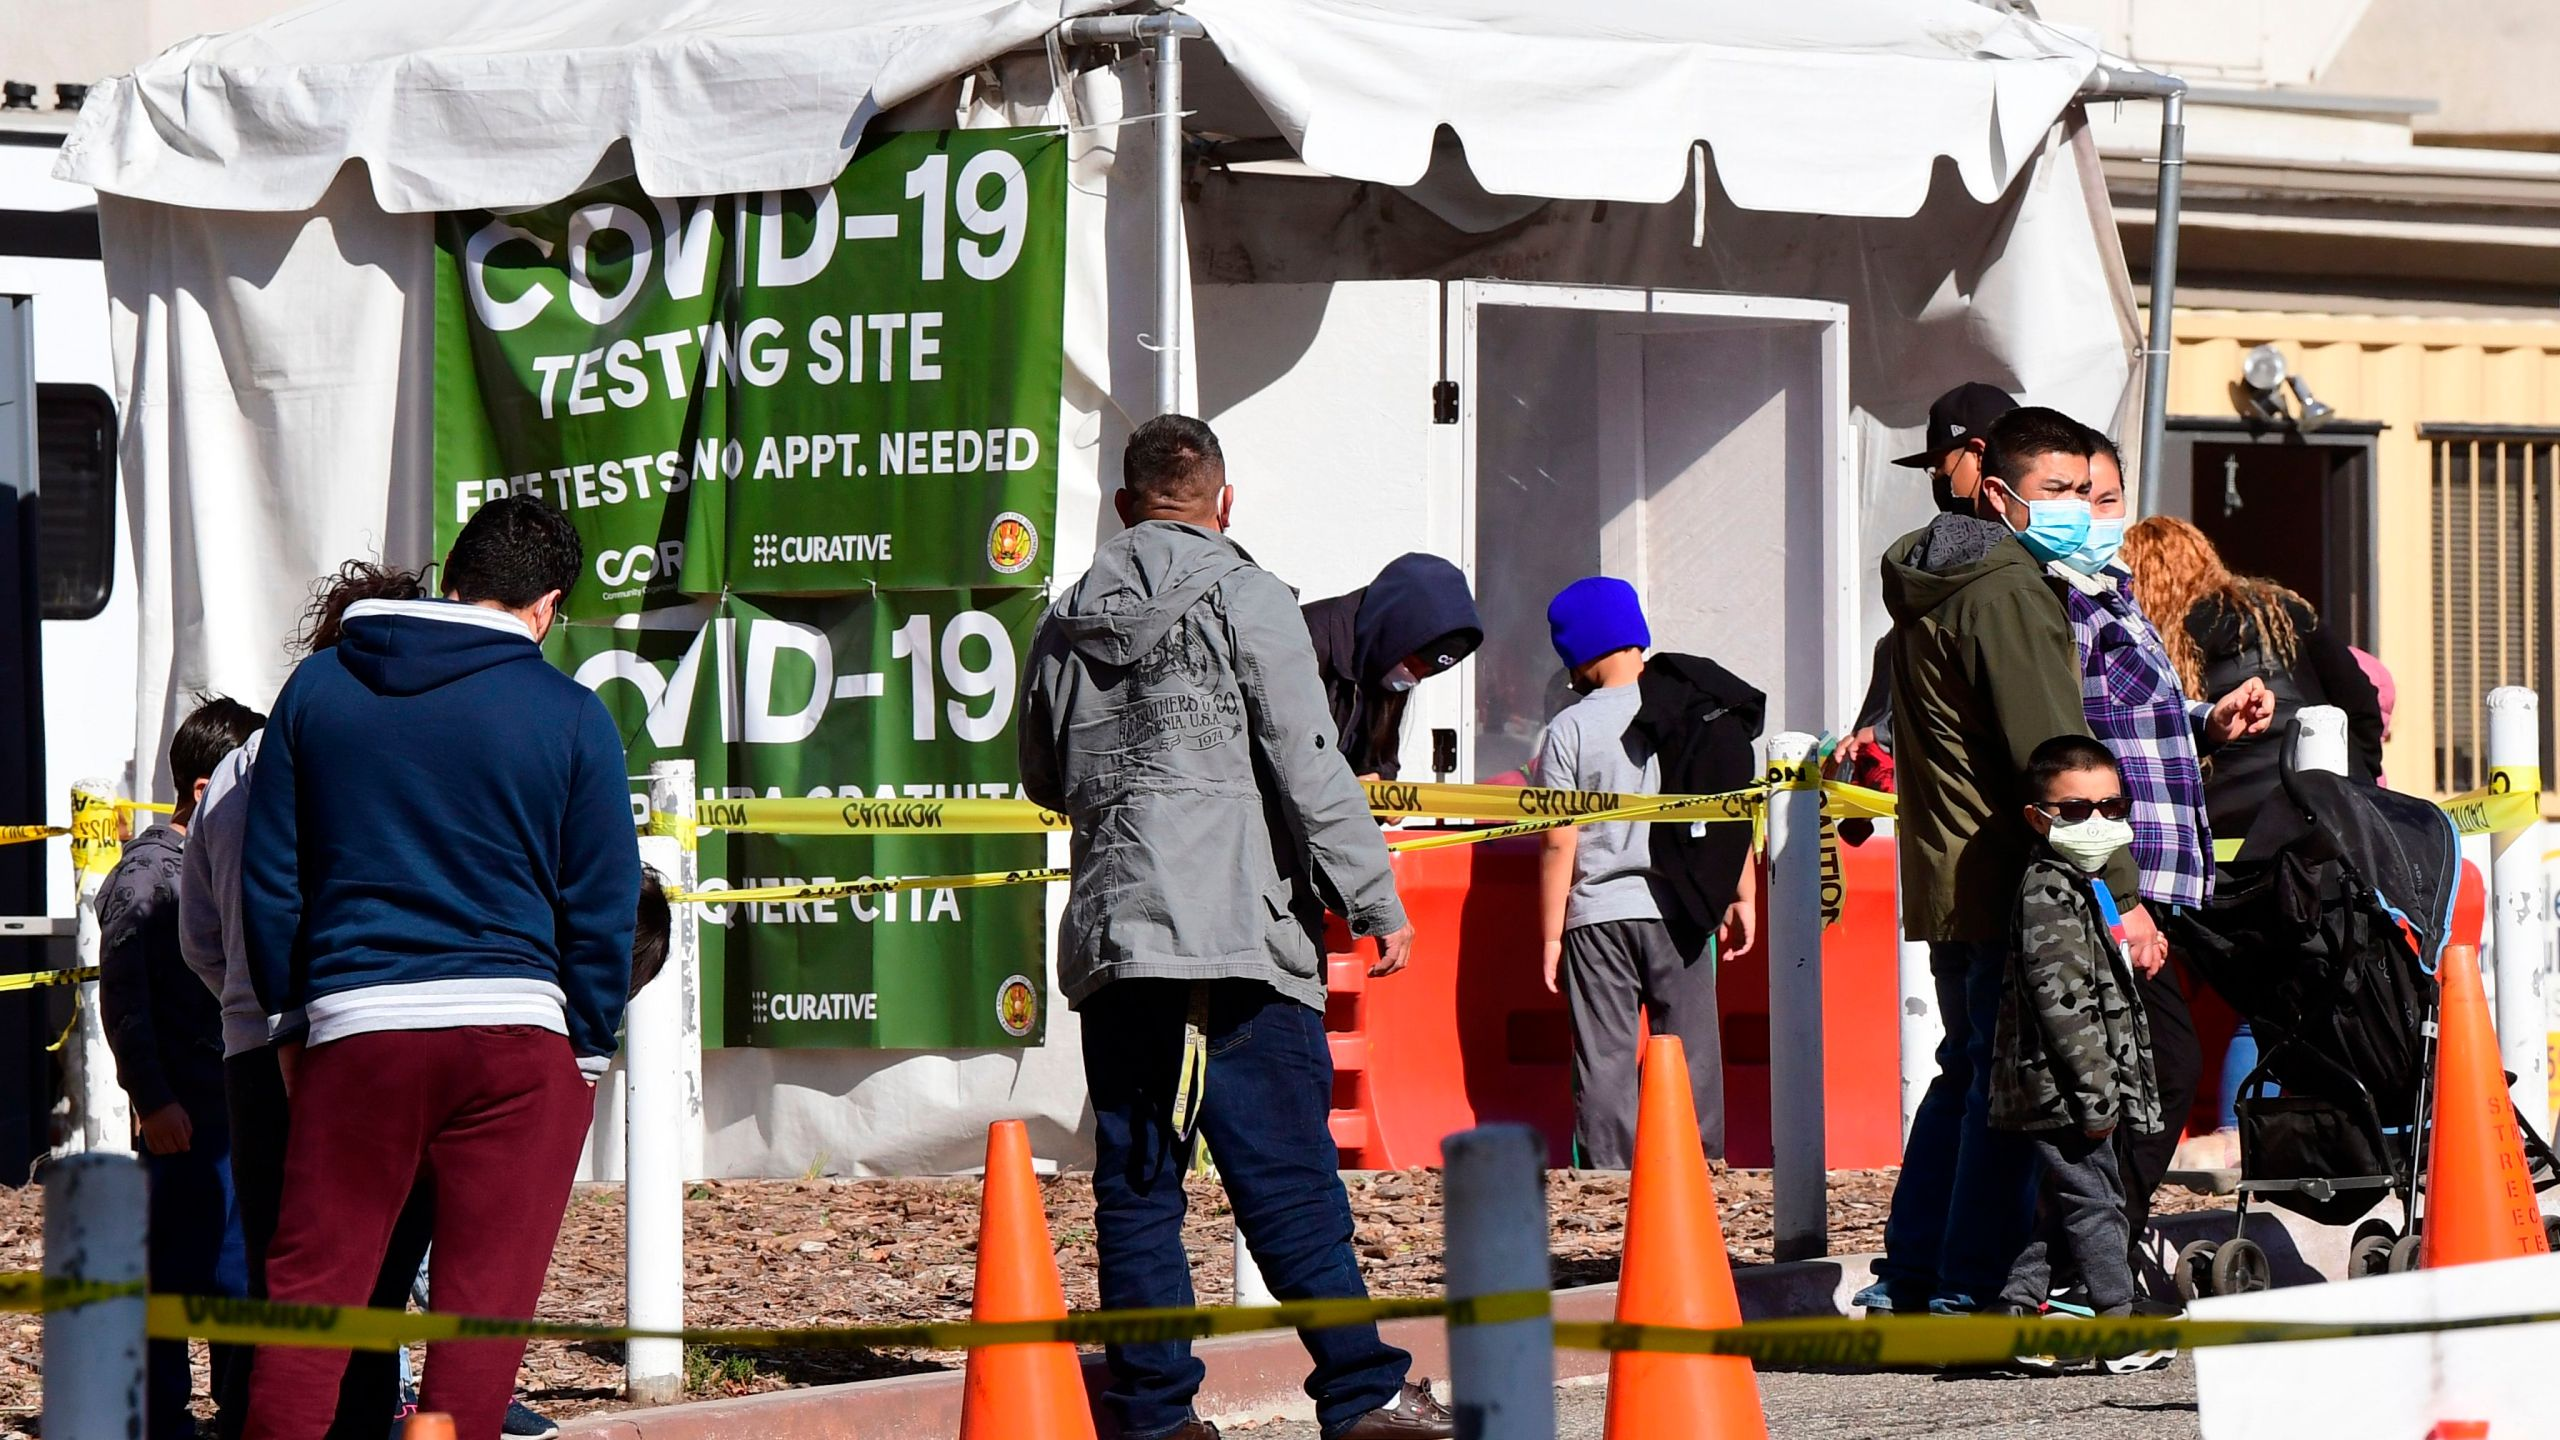 People arrive at a walk-up COVID-19 testing site at Lincoln Park in Los Angeles on Jan. 28, 2021. (Frederic J. Brown / AFP / Getty Images)